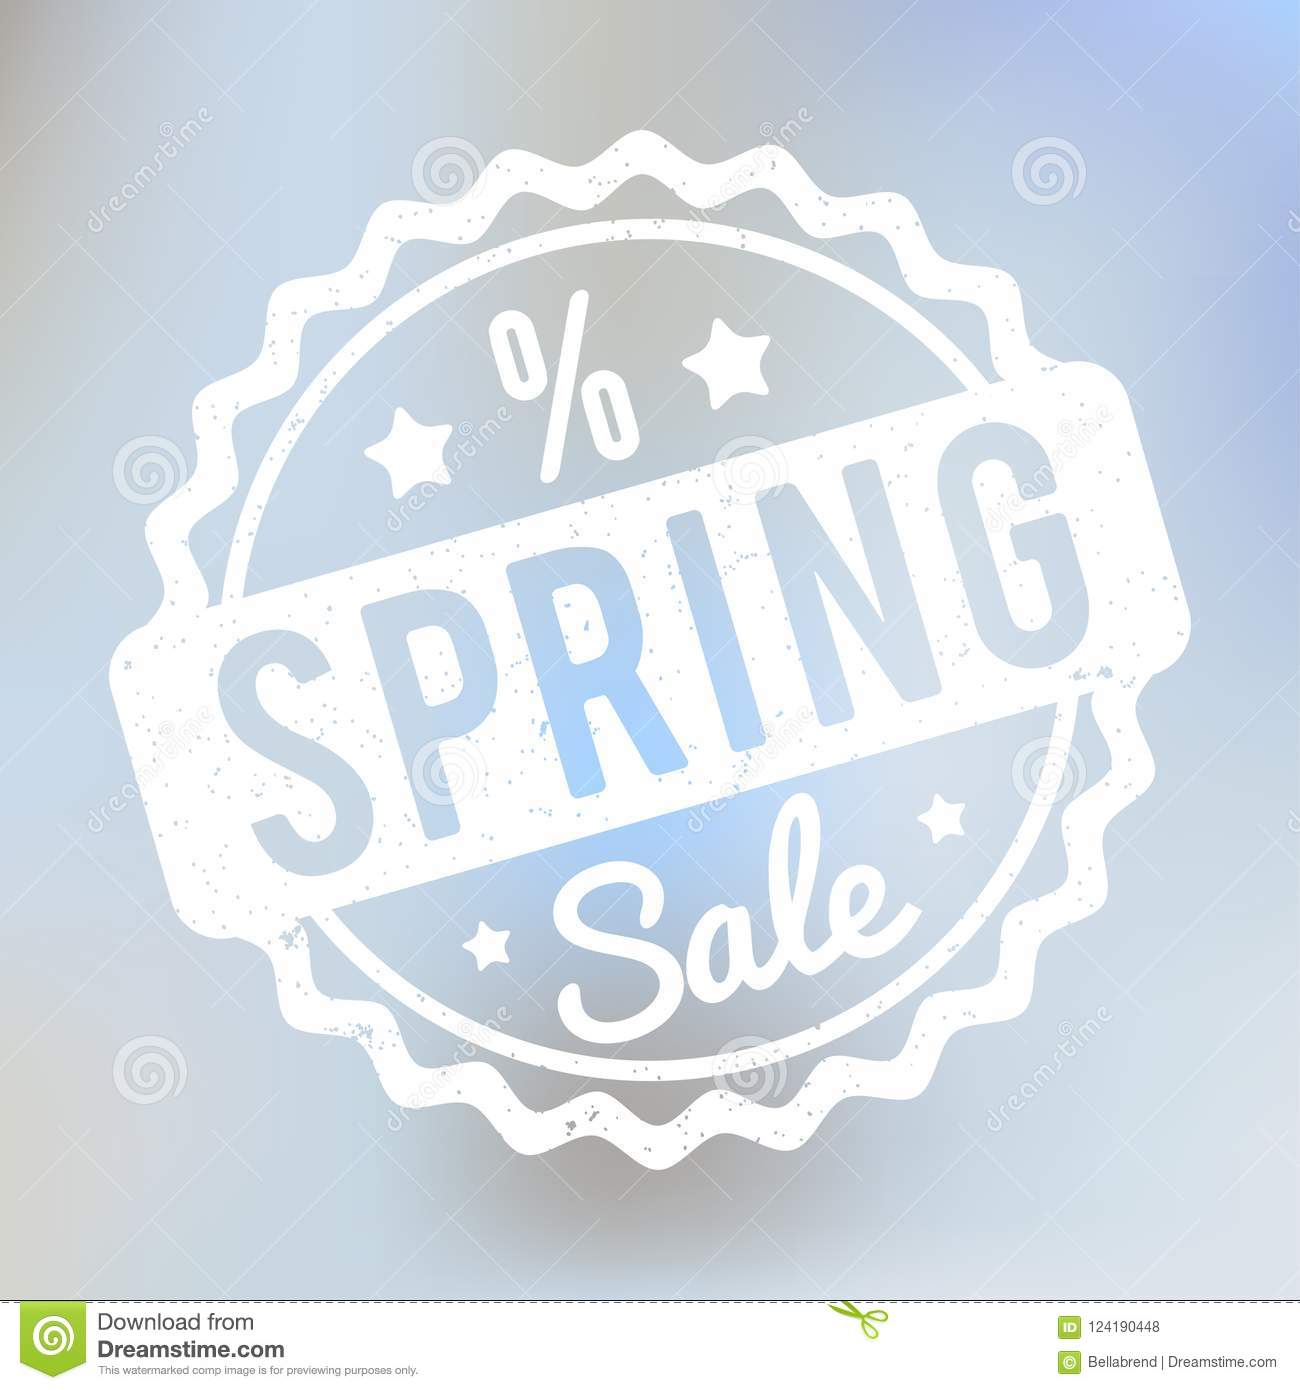 Spring Sale rubber stamp white on a lila bokeh background.